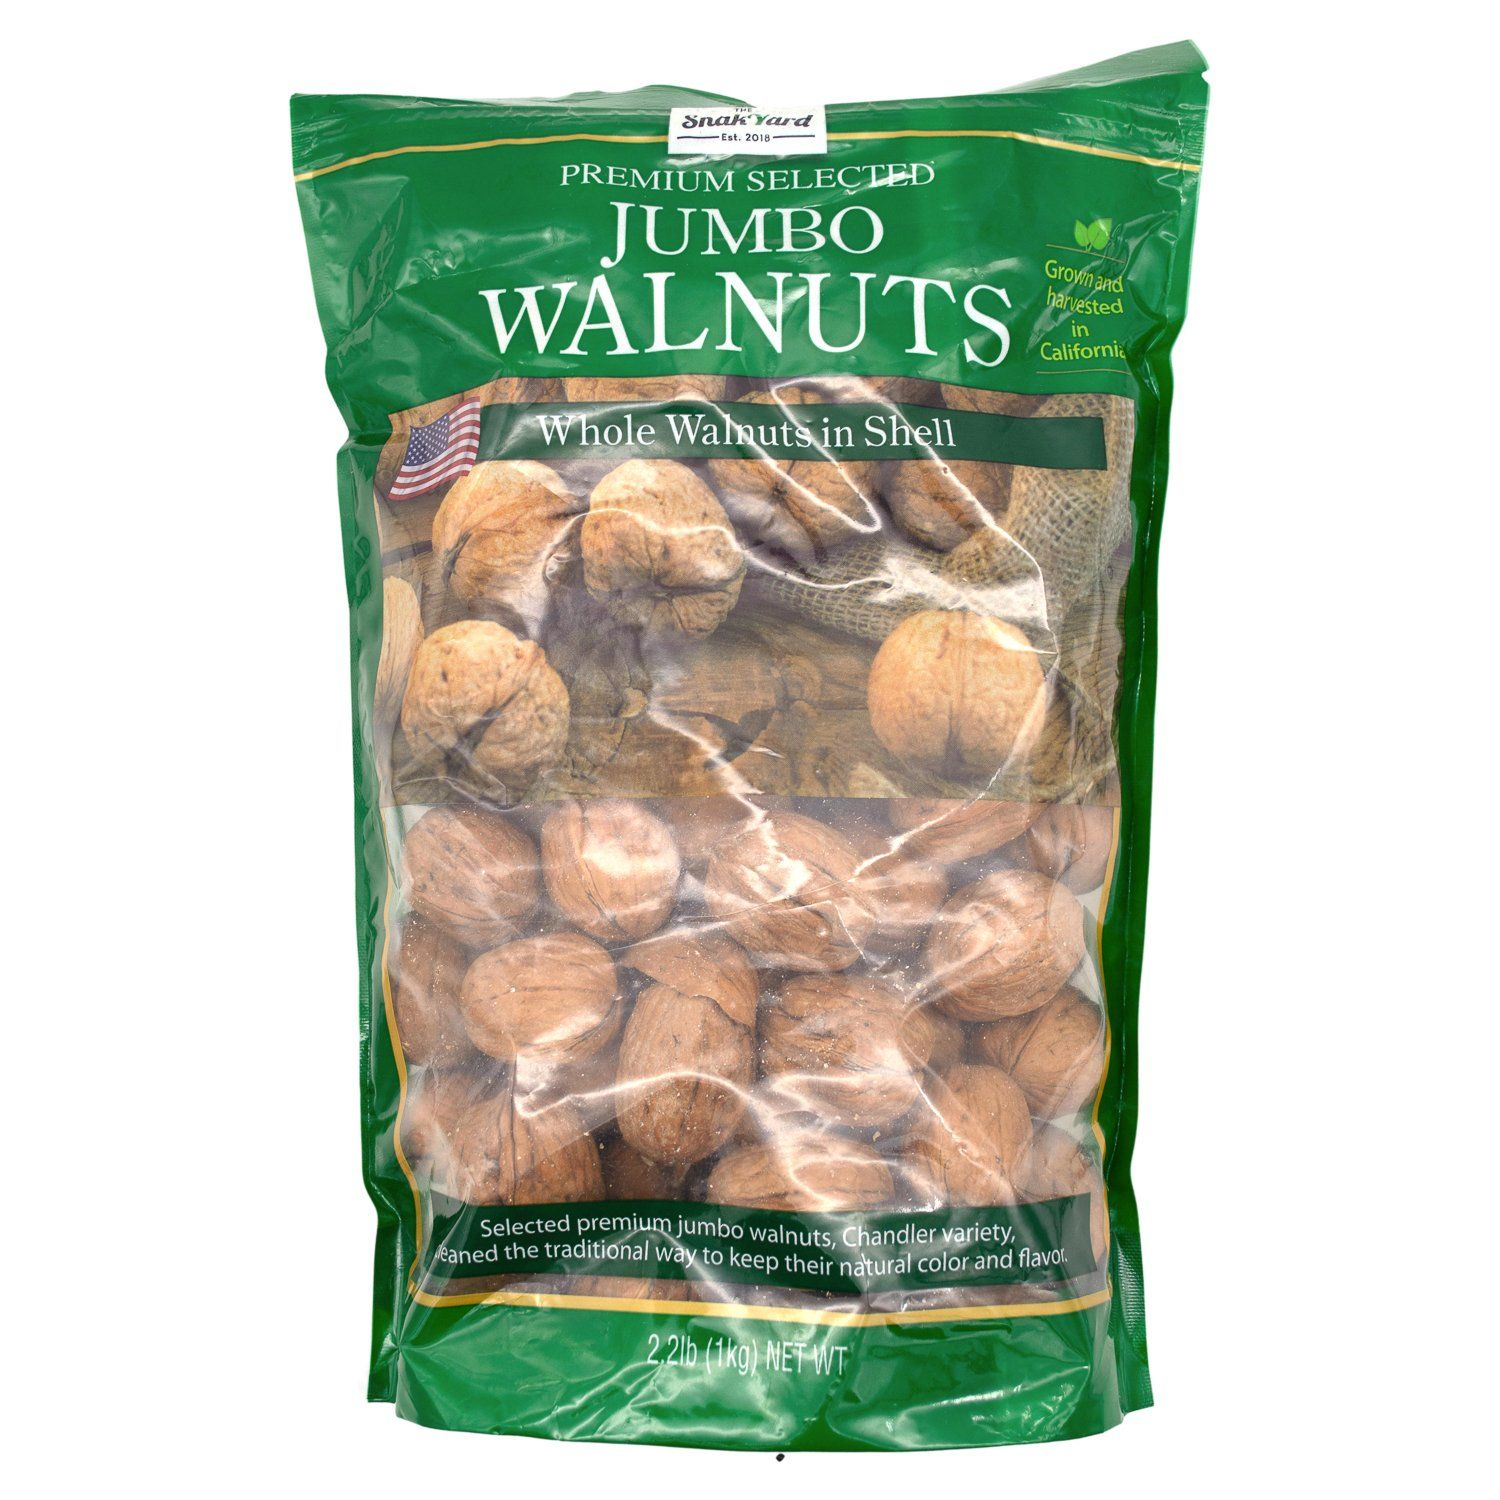 The Snak Yard Whole Walnuts in Shell The Snak Yard